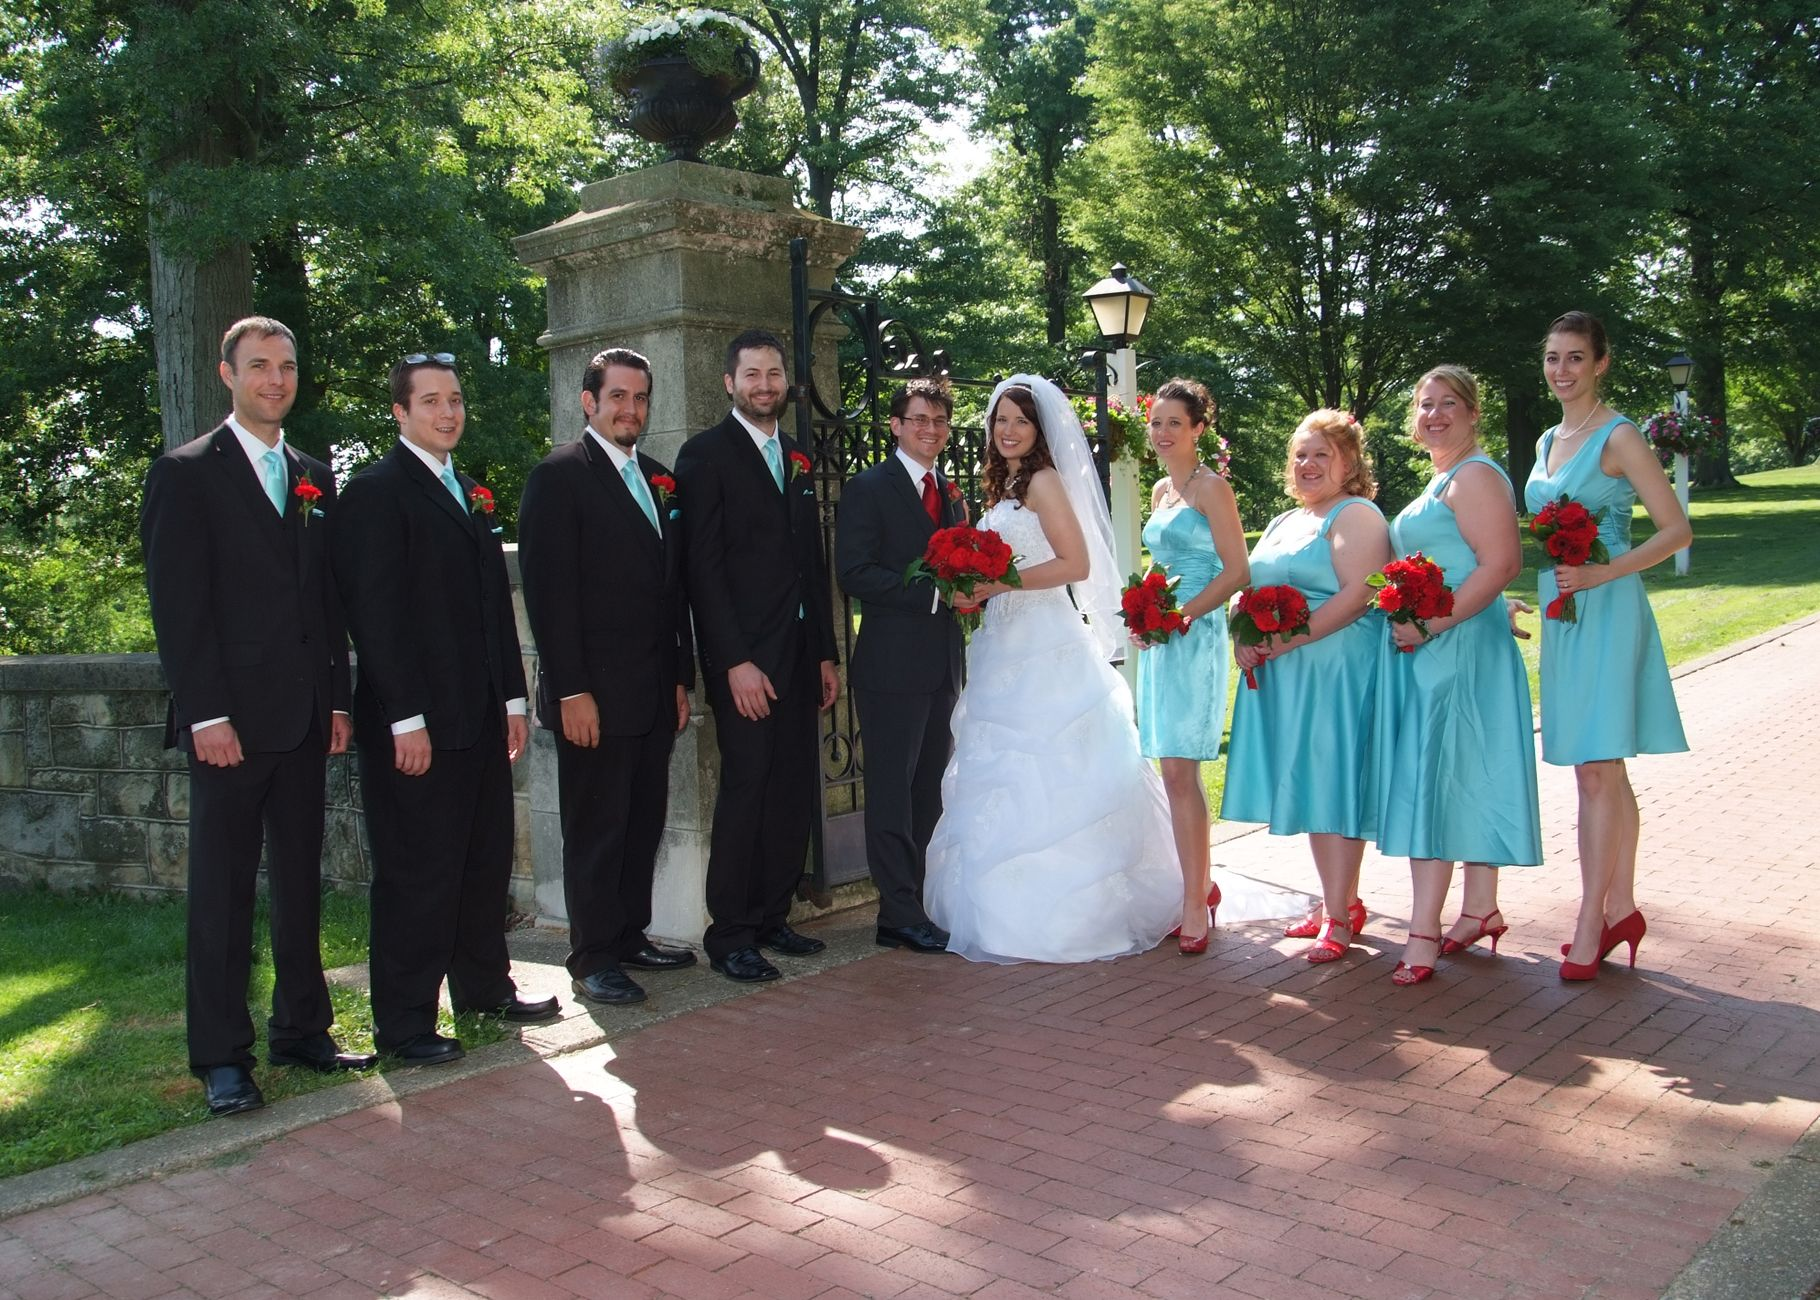 My Wedding Colors David S Bridal Pool Dresses Ties W Red Shoes For The Flowers Everyone